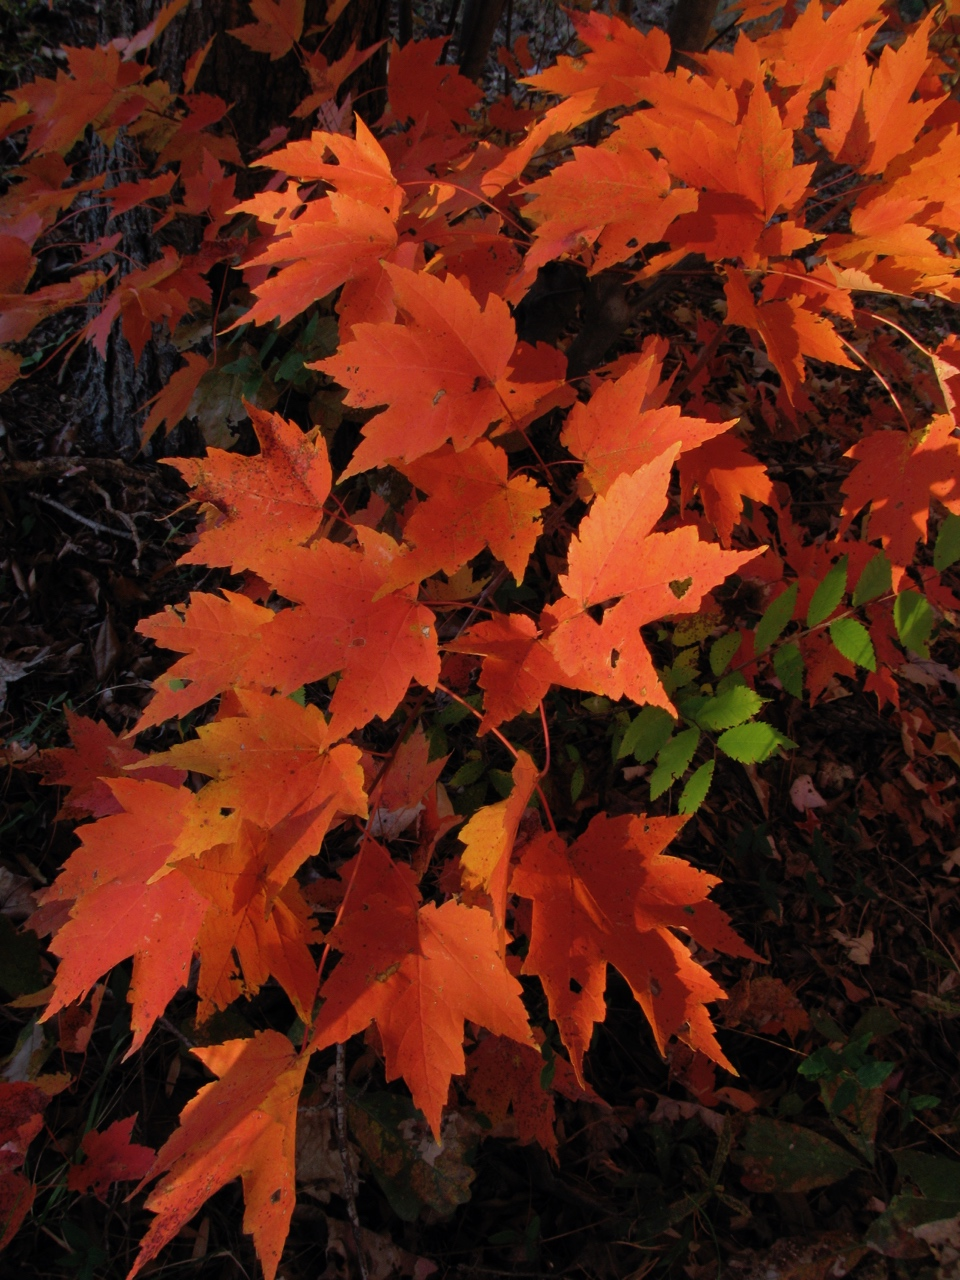 The Scientific Name is Acer rubrum. You will likely hear them called Red Maple. This picture shows the Beautiful fall color in November of Acer rubrum